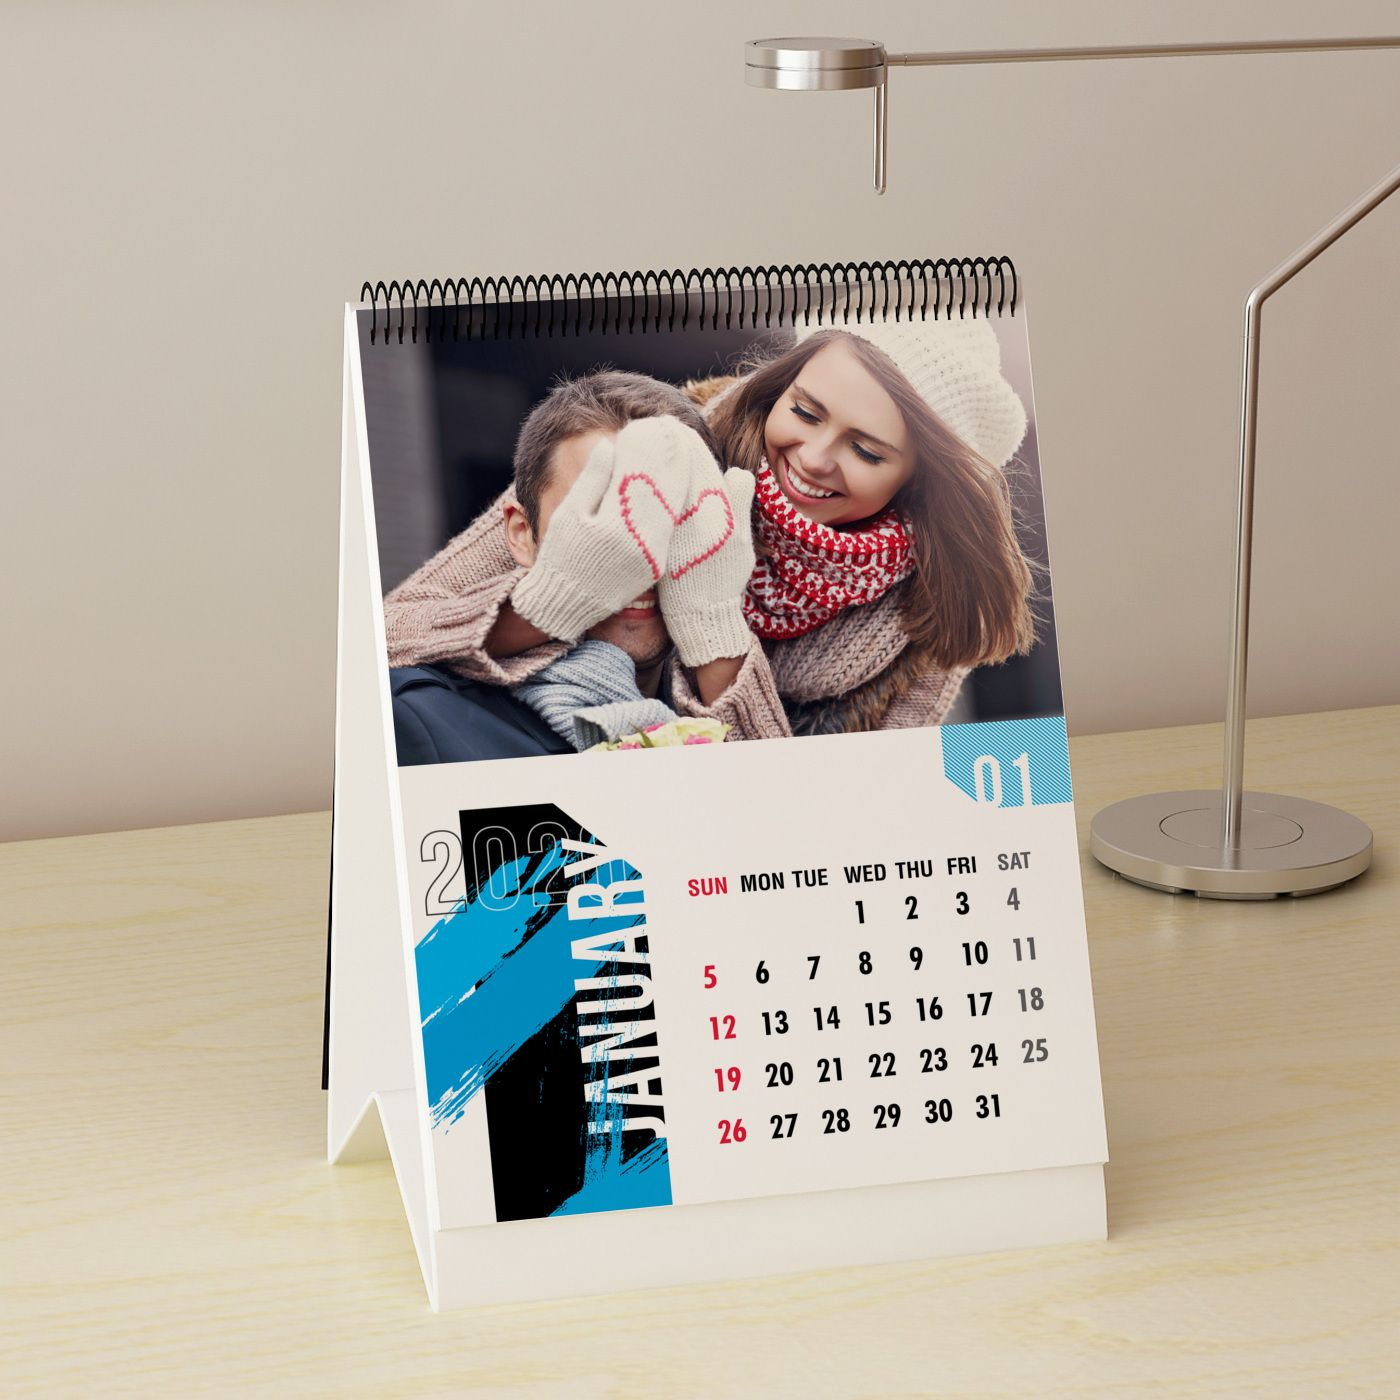 Personalized Desk Calendar For New Year 2020 Personalized Desk Calendar Personalized Desk Desk Calendars